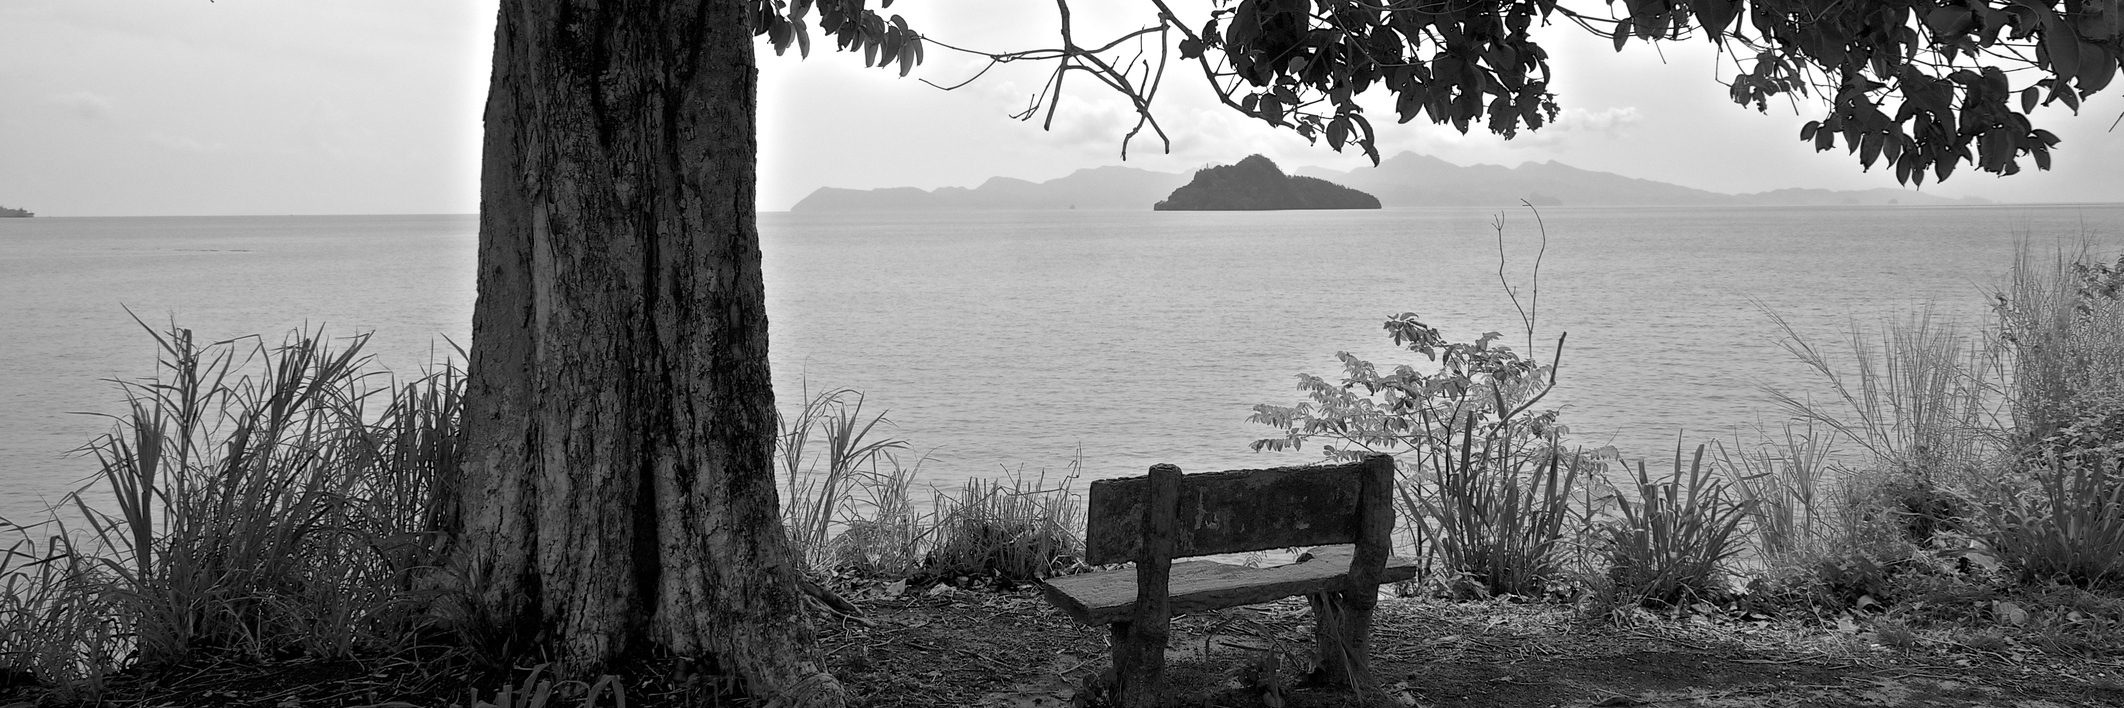 Bench under a tree by a lake, black-and-white photo.